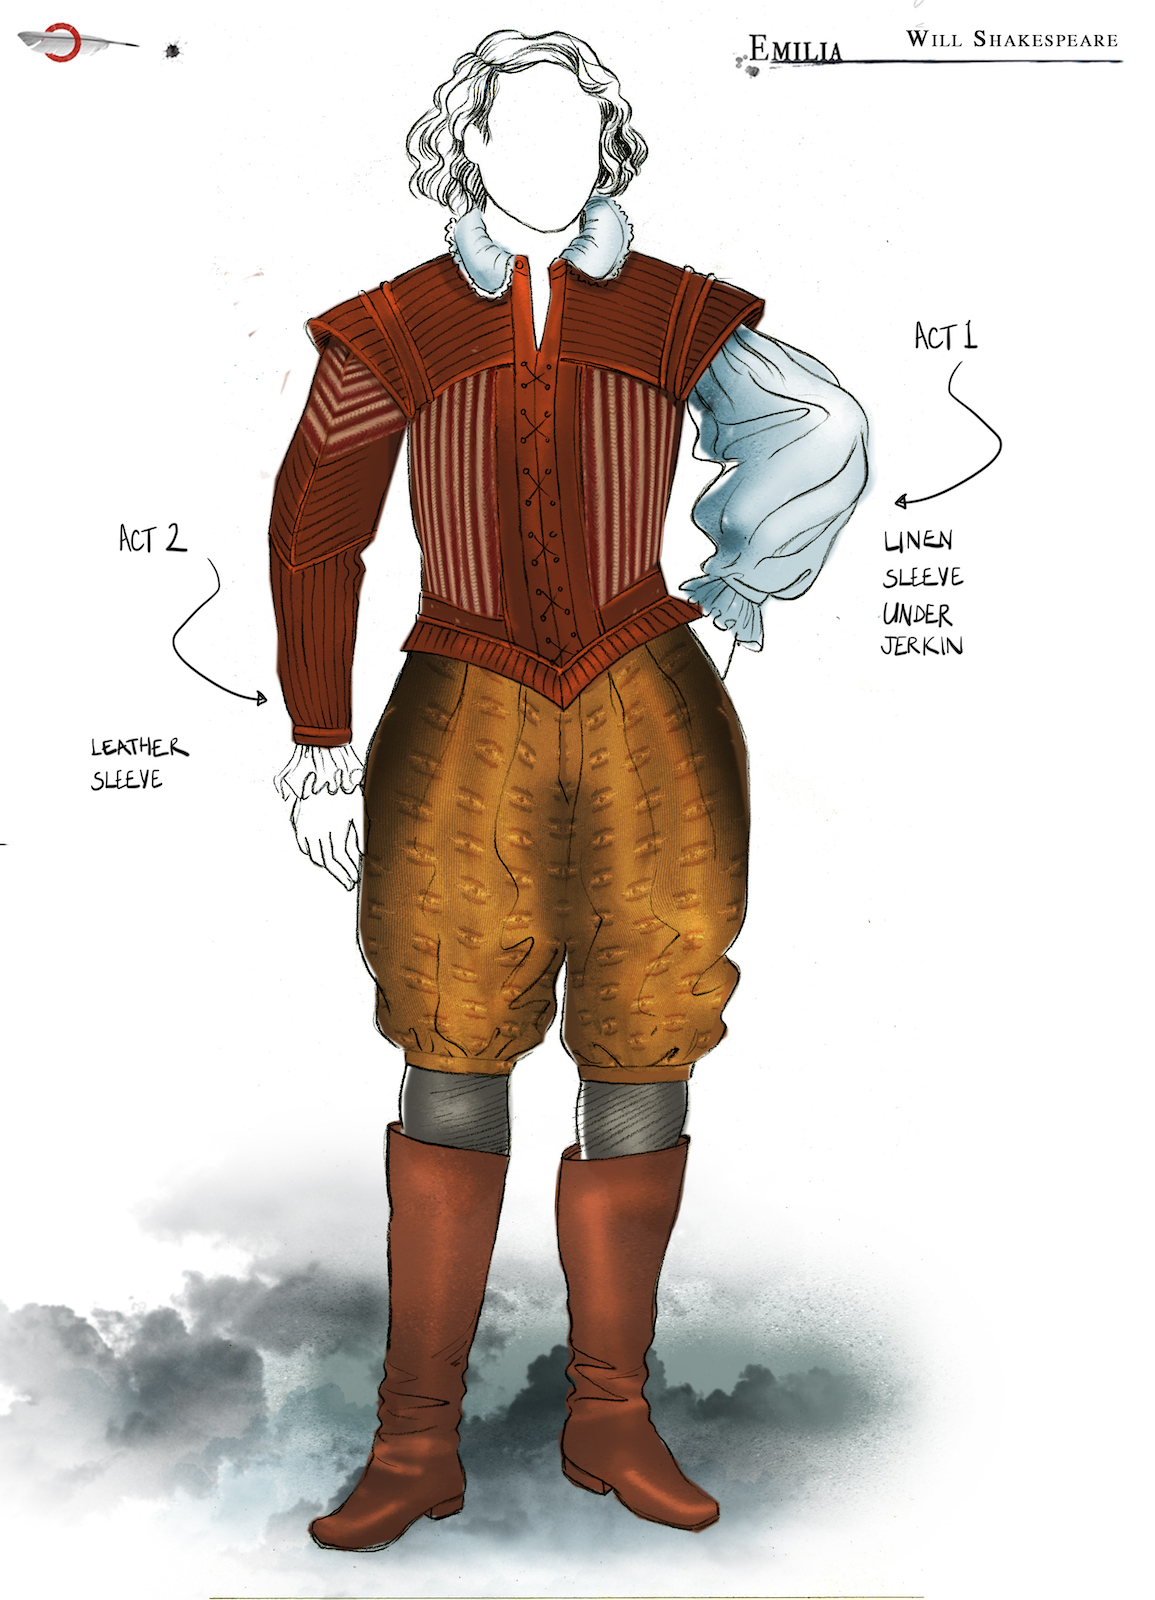 A costume sketch of a male Elizabethan outfit with linen puffed sleeves